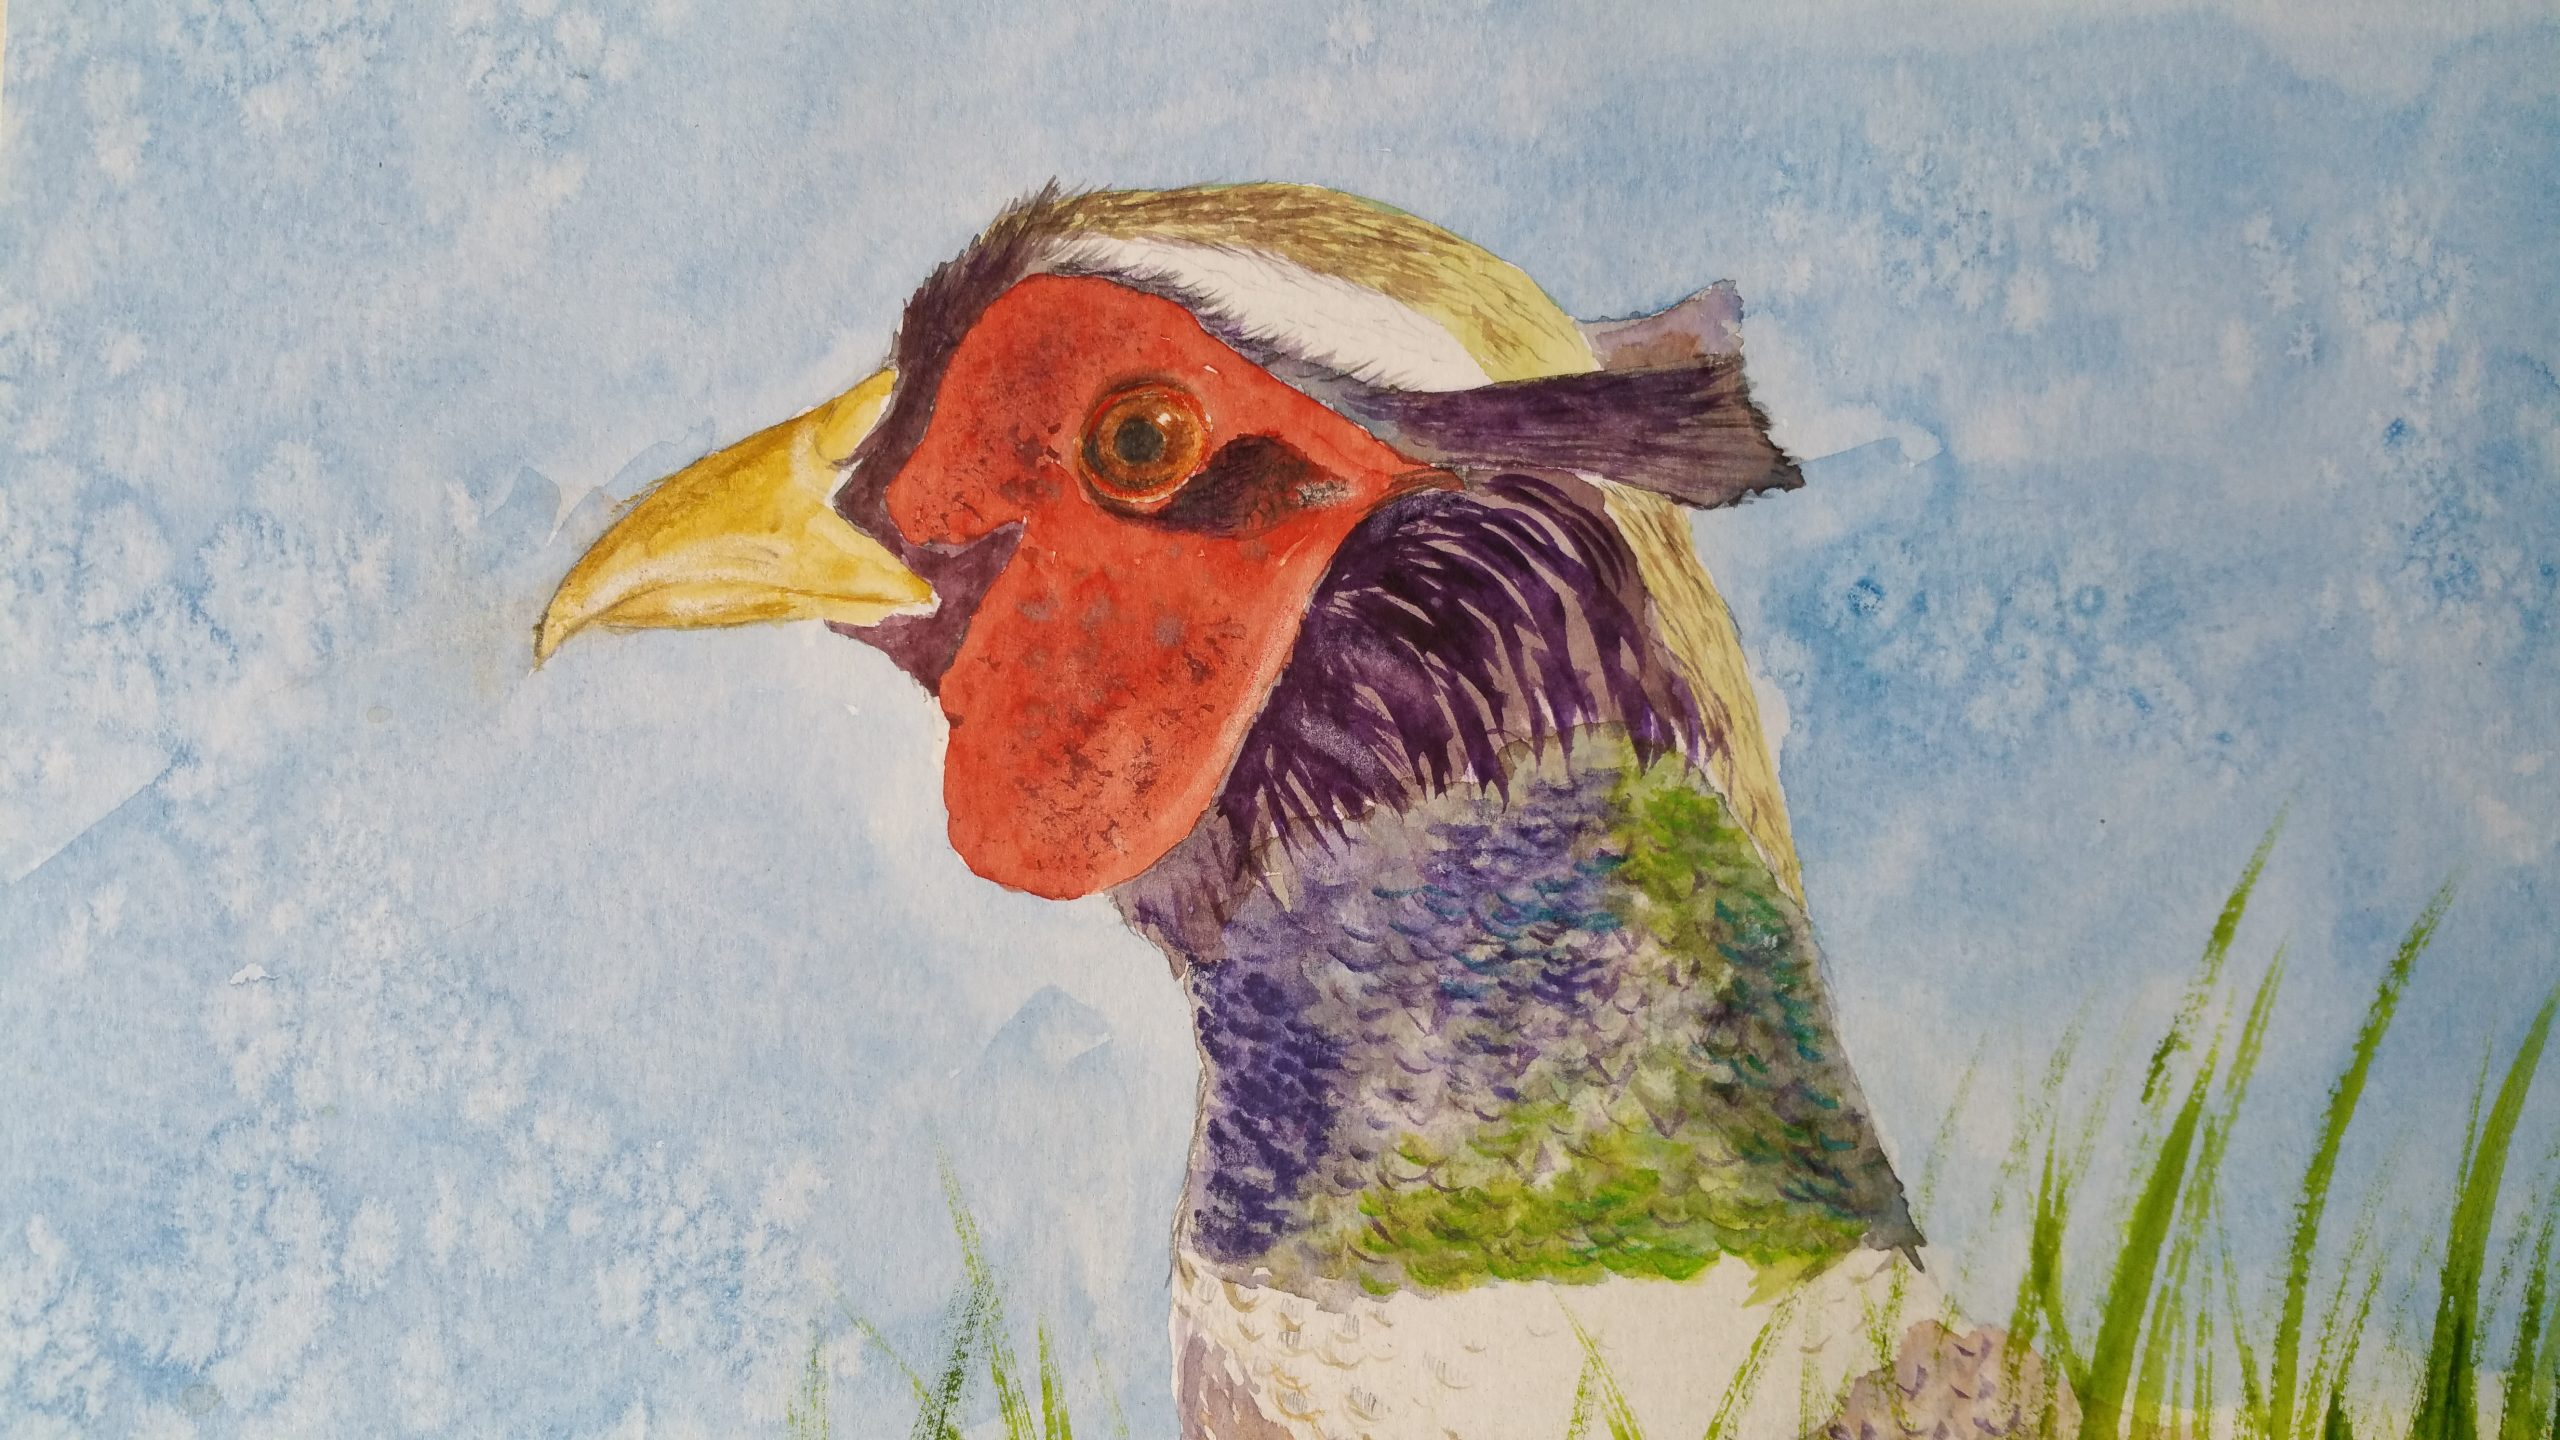 John's watercolour painting of a pheasant